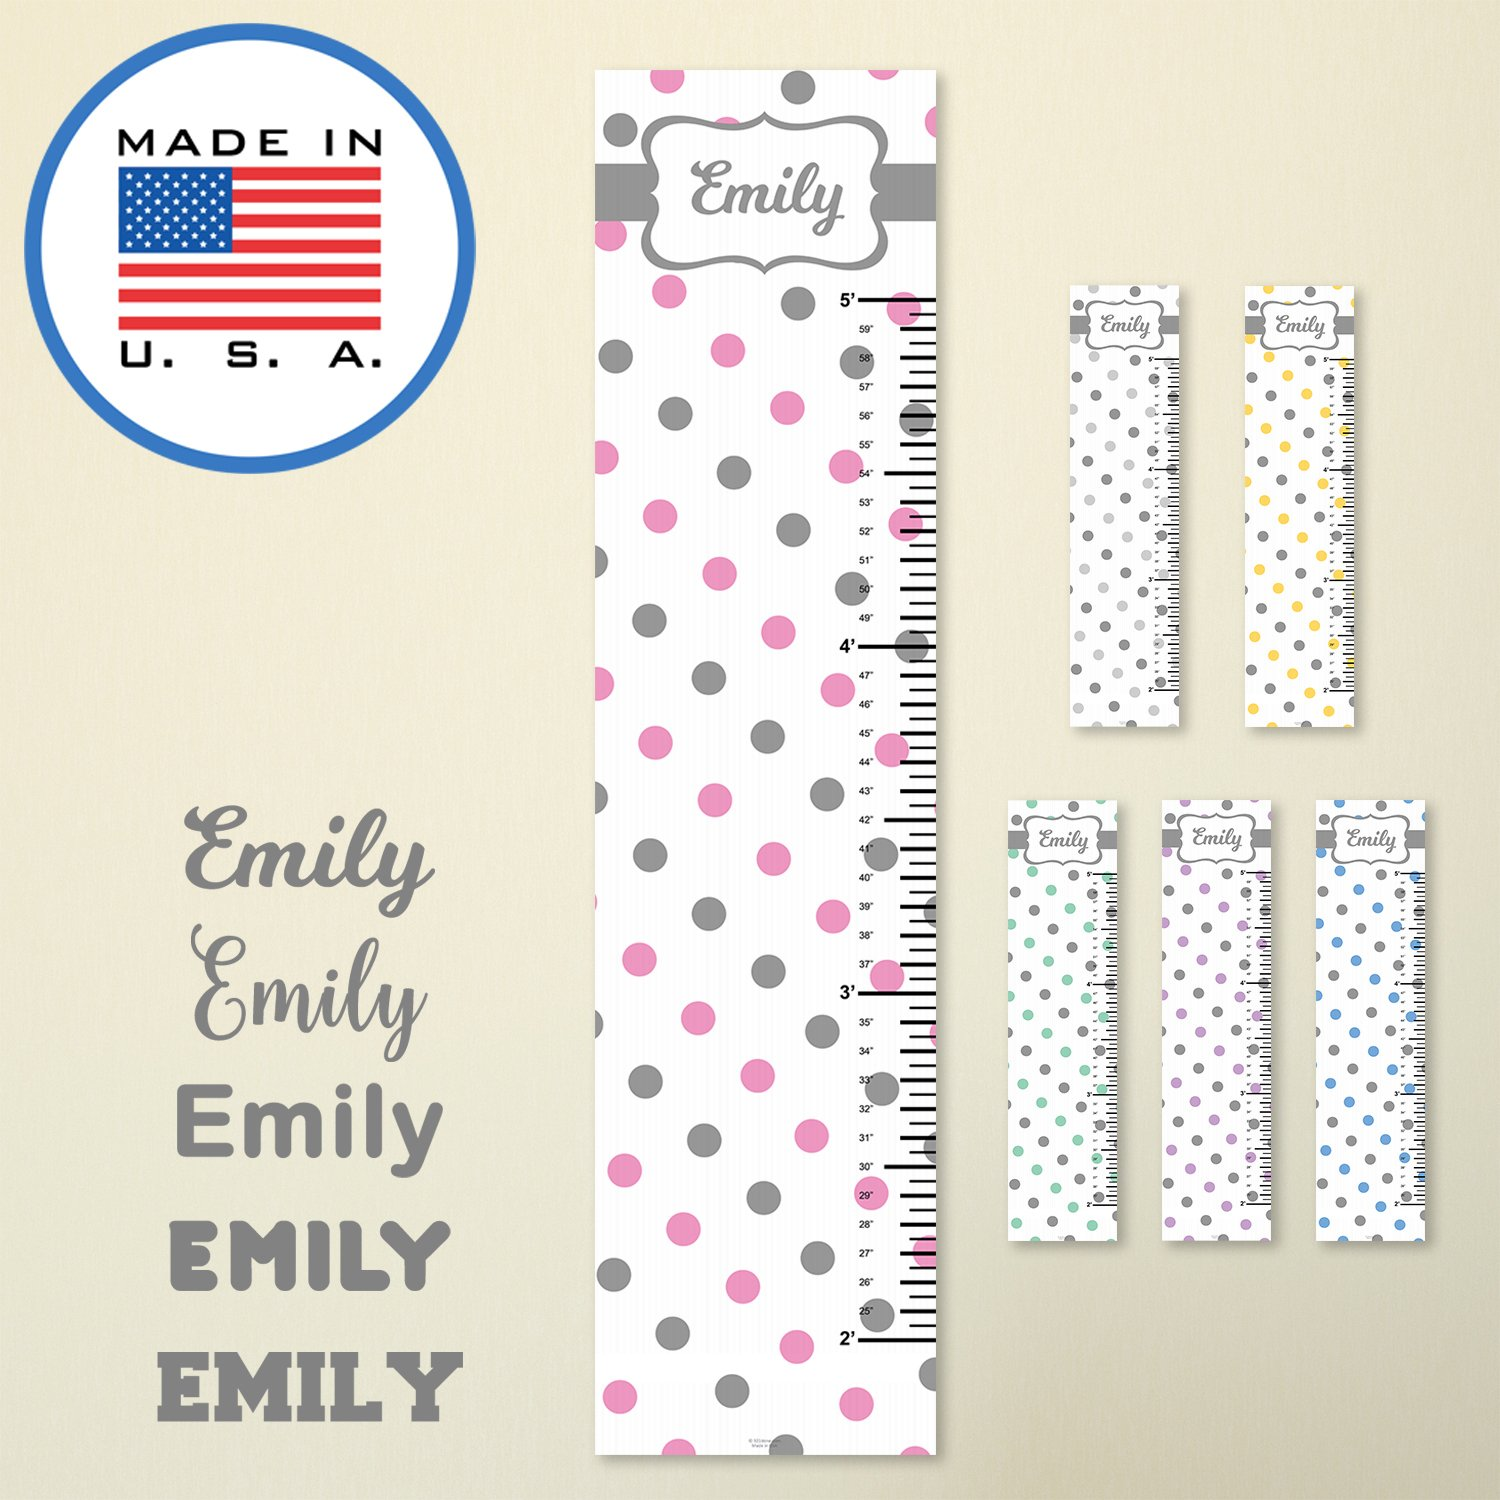 321Done Personalized Hanging Growth Chart, Polka Dots Gray Pink with Name, Height Ruler Measurement, Vinyl Banner Nursery Wall Decor Baby, Made in USA